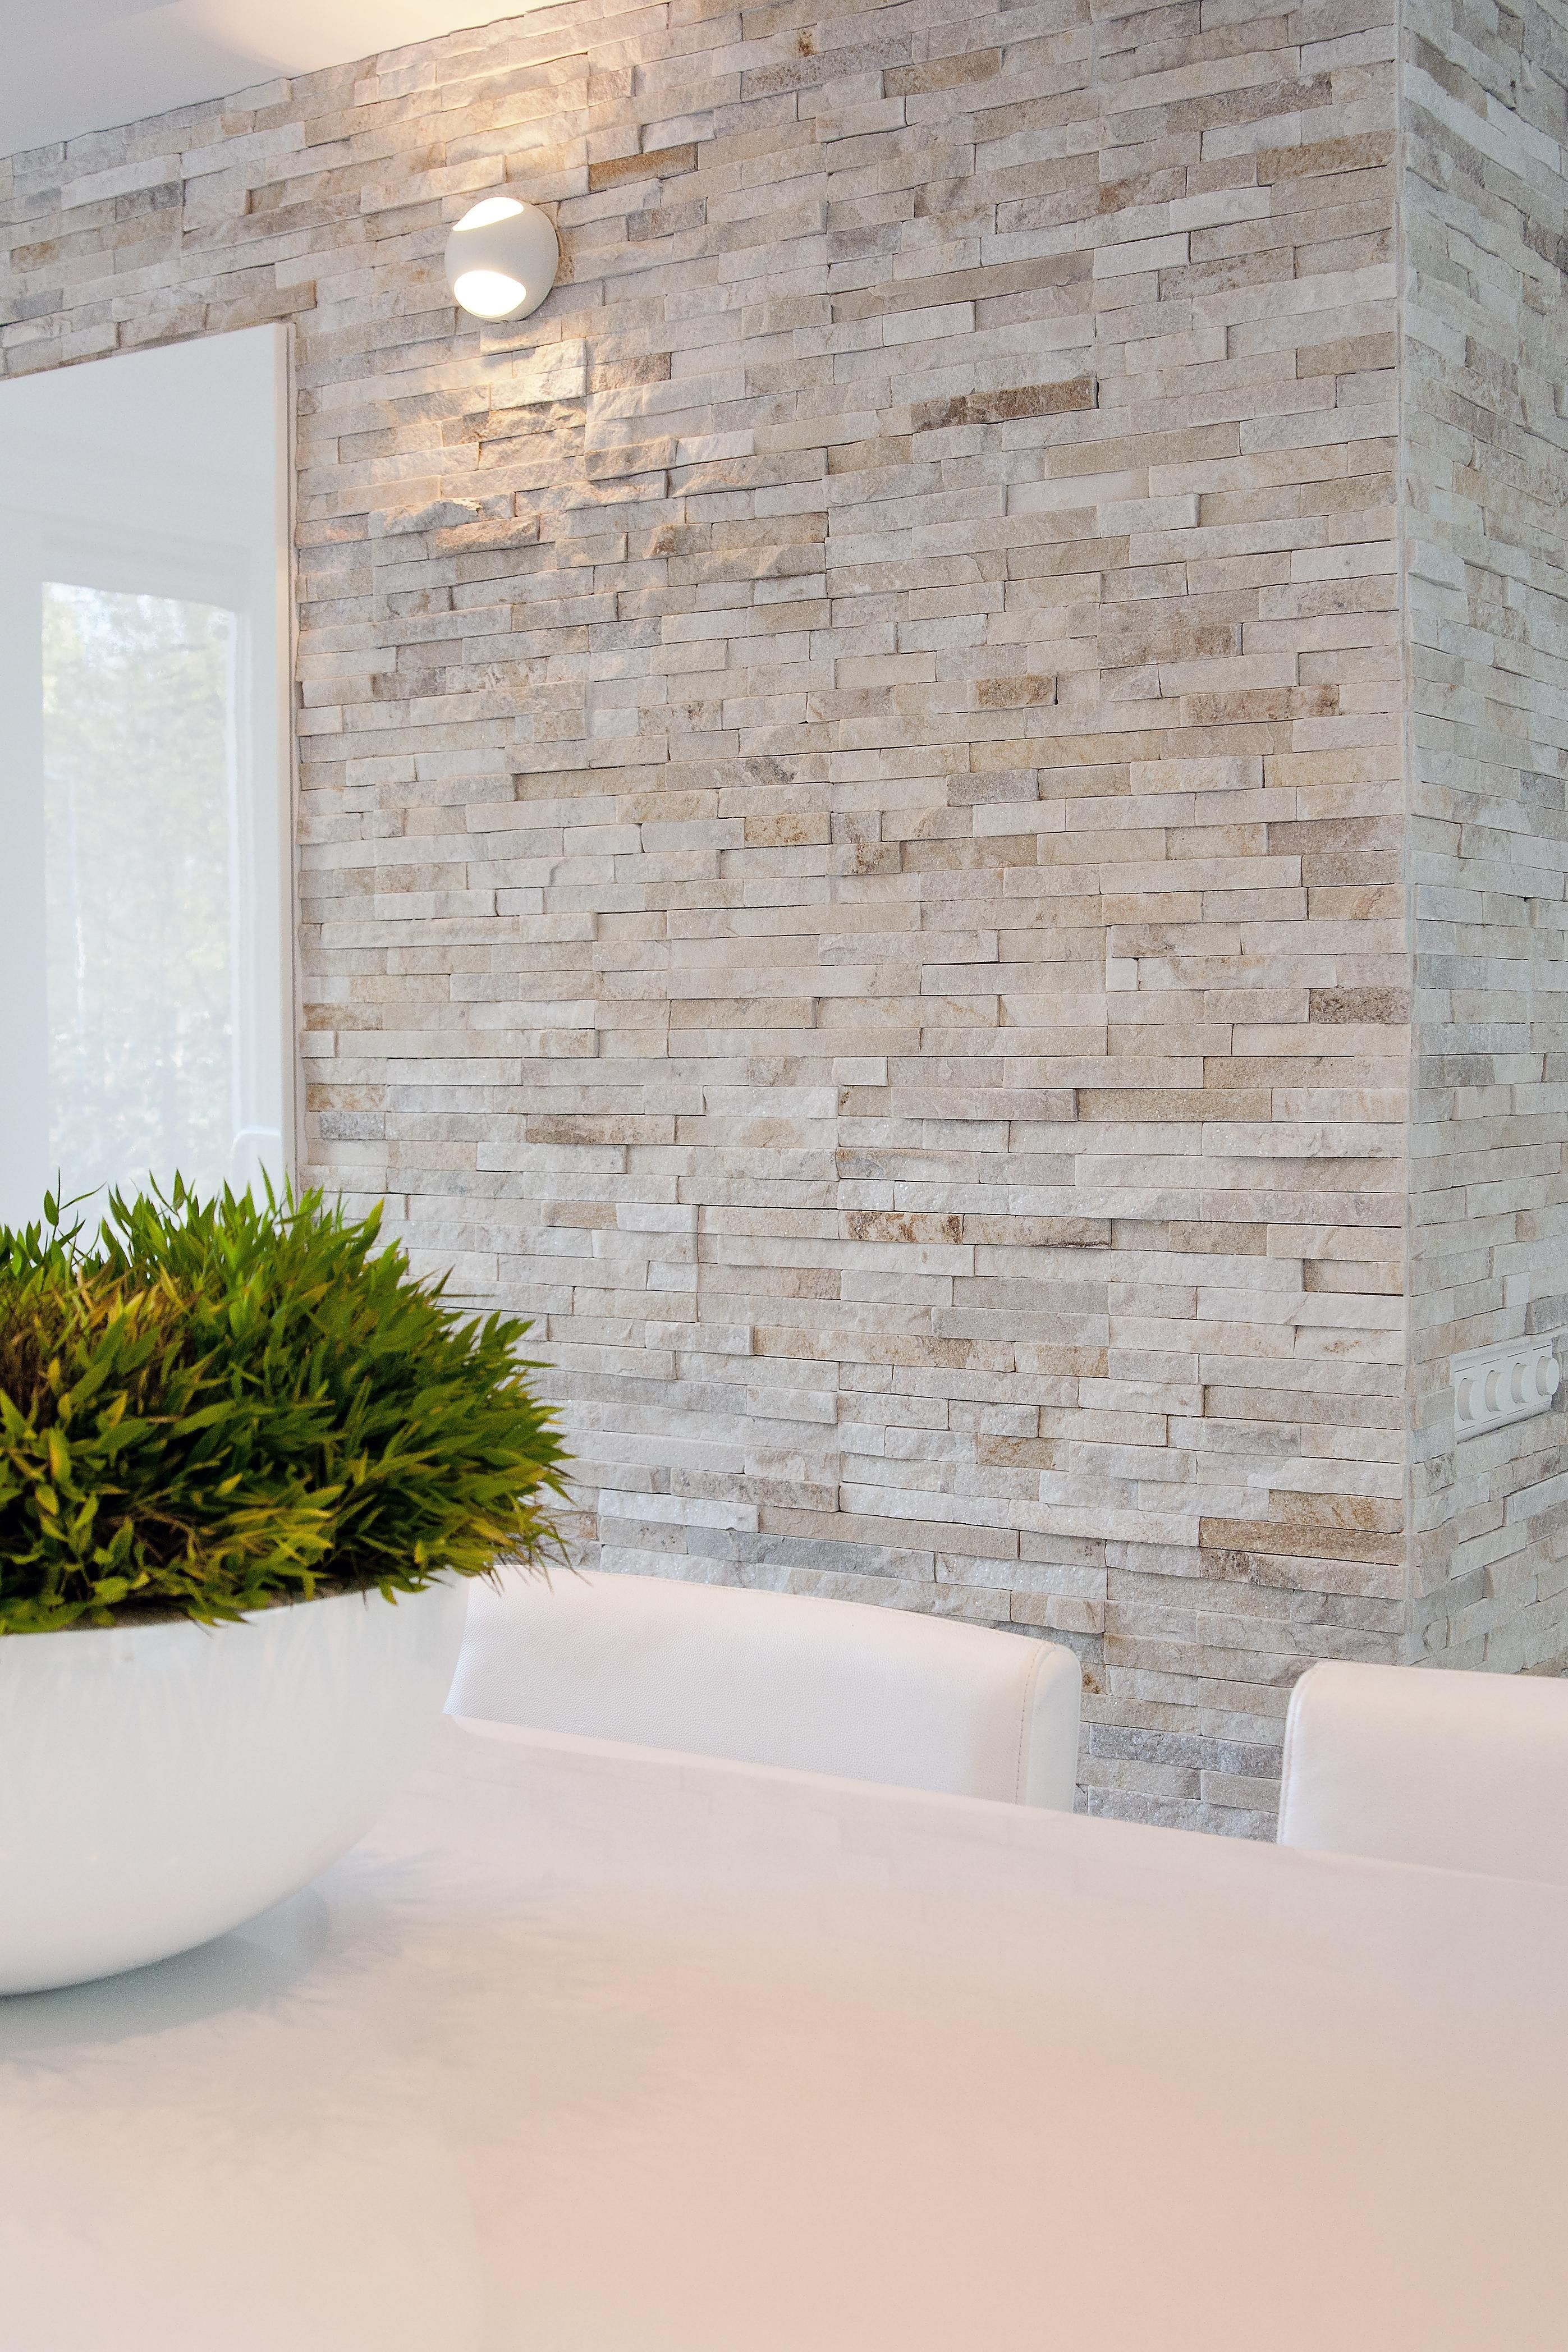 Kitchen wall with barroco stone panels k che pinterest - Steinwand paneel ...